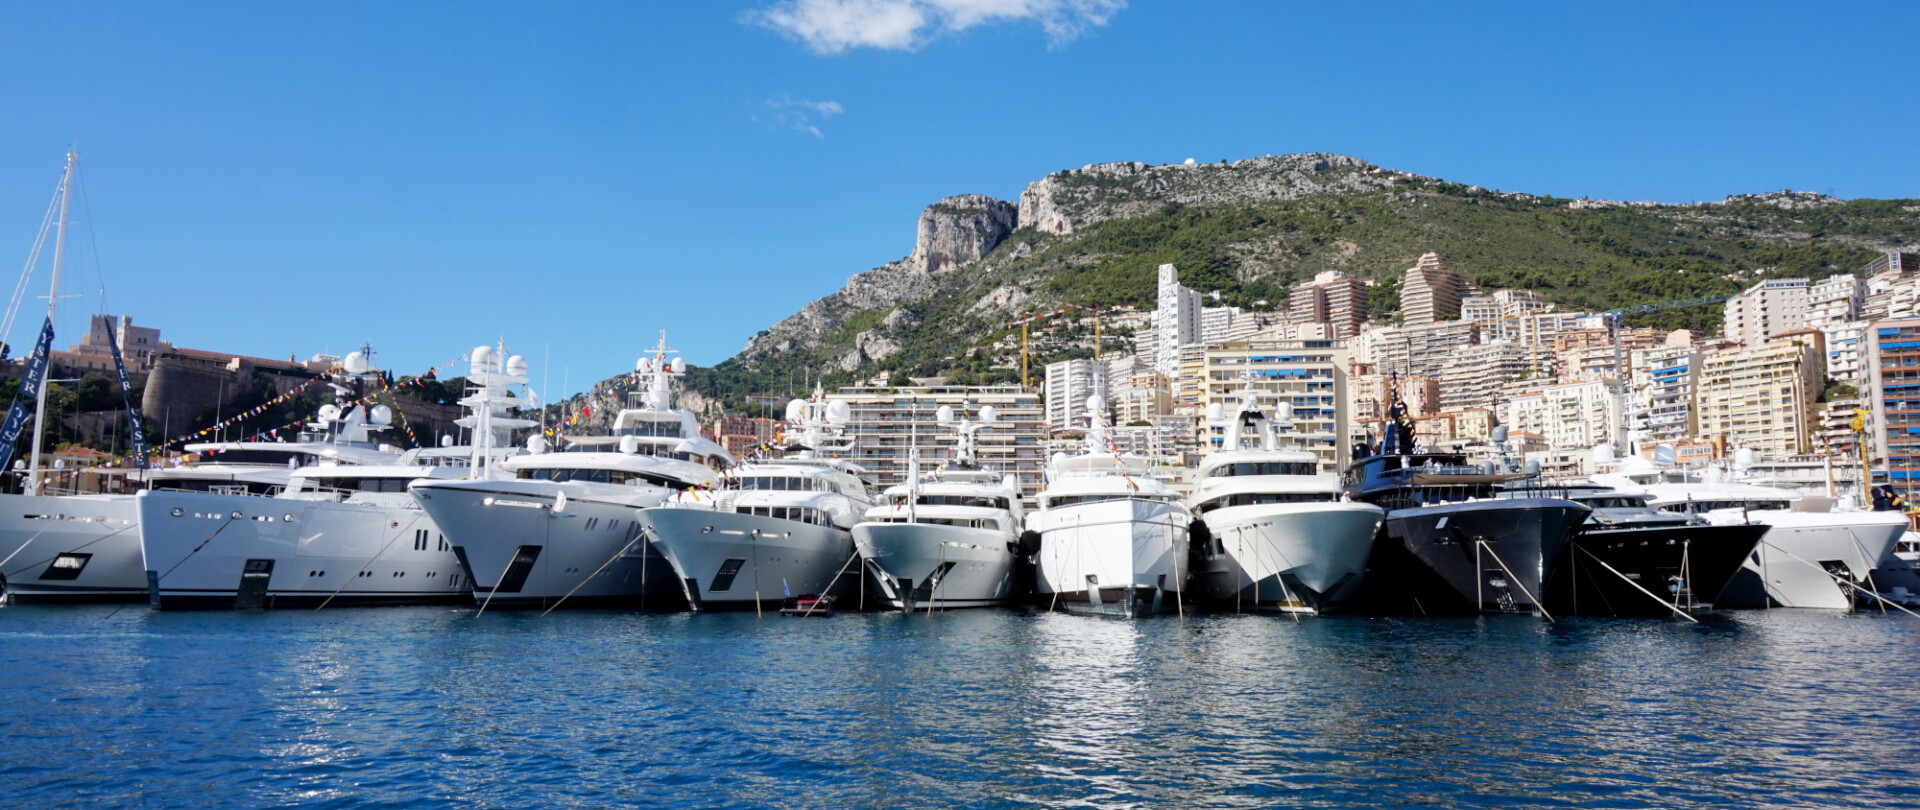 Monaco Yacht Show 2017 | There's only one place to be photo 1